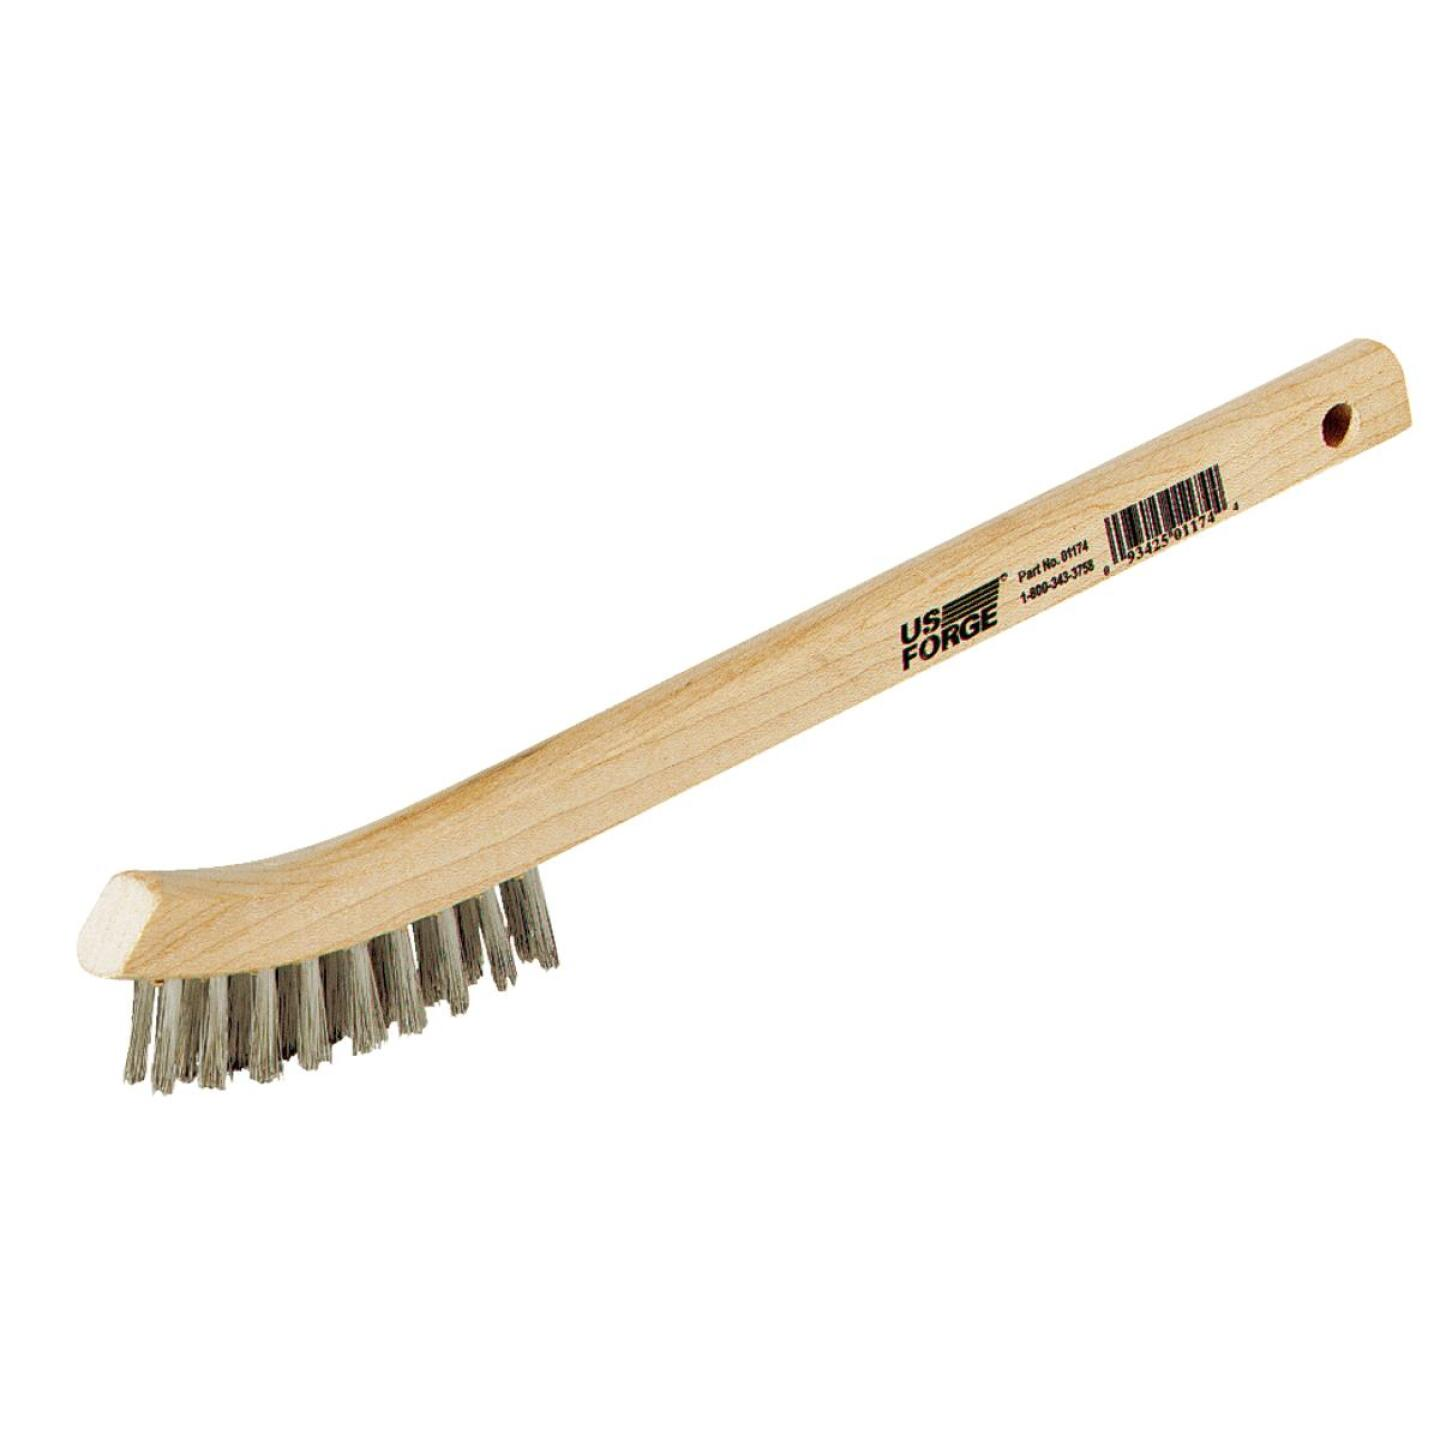 Forney 7-3/4 In. Curved Wood Handle Wire Brush with Stainless Steel Bristles Image 1